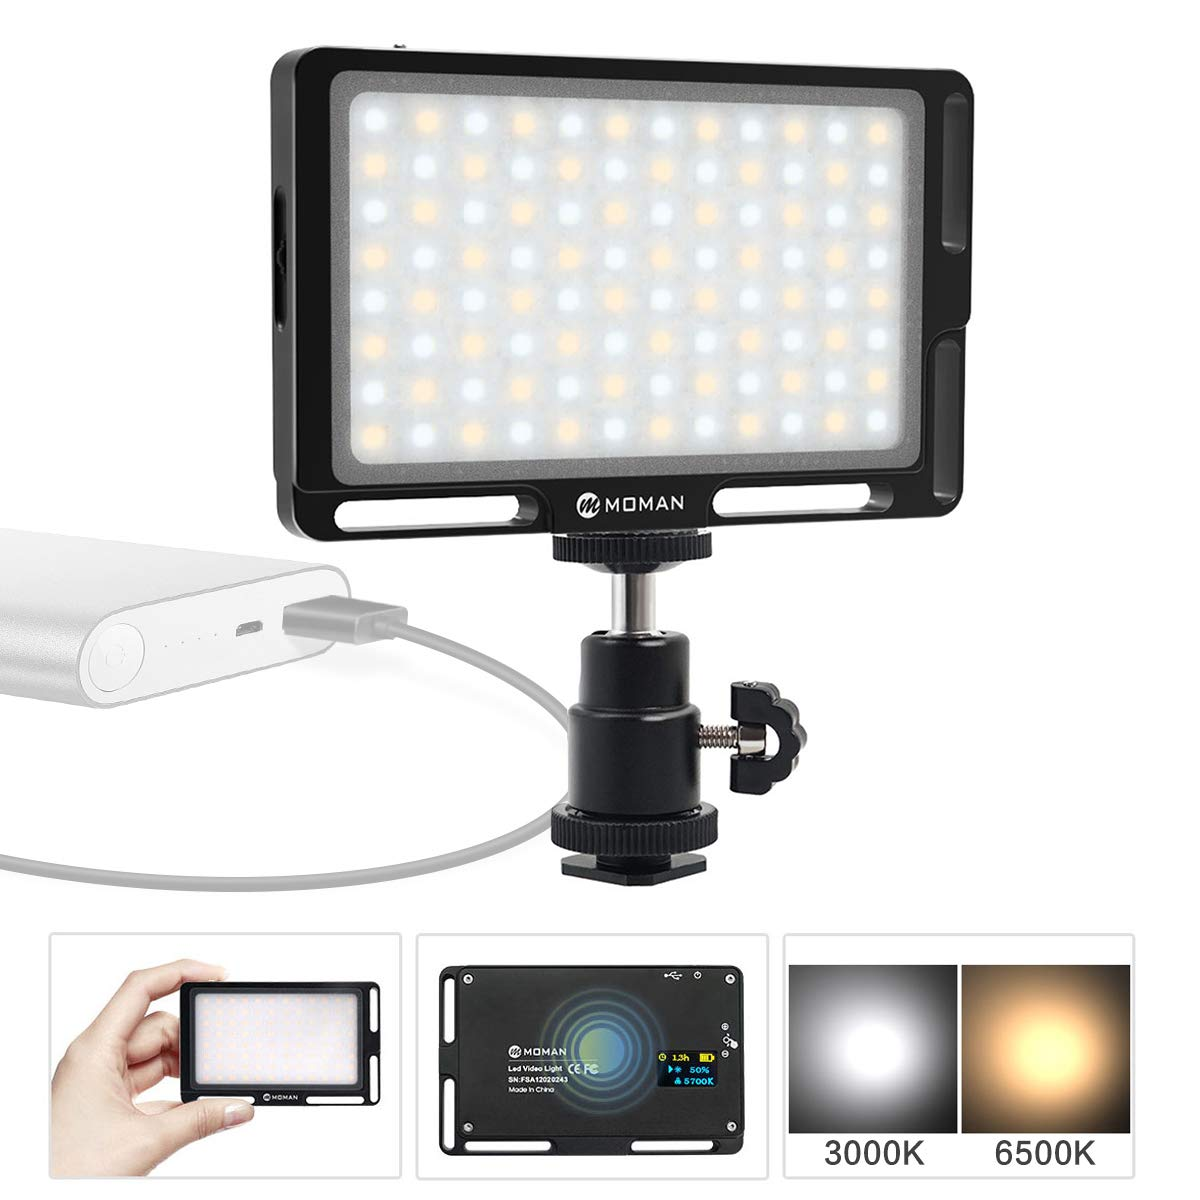 Moman On Camera Video Light for DSLR, 4.5 Inch 96 LED Panel CRI 96 Megnetic Bi-Color 3000K-6500K Brightness Dimmable OLED Display, Aluminum (Black) by Moman